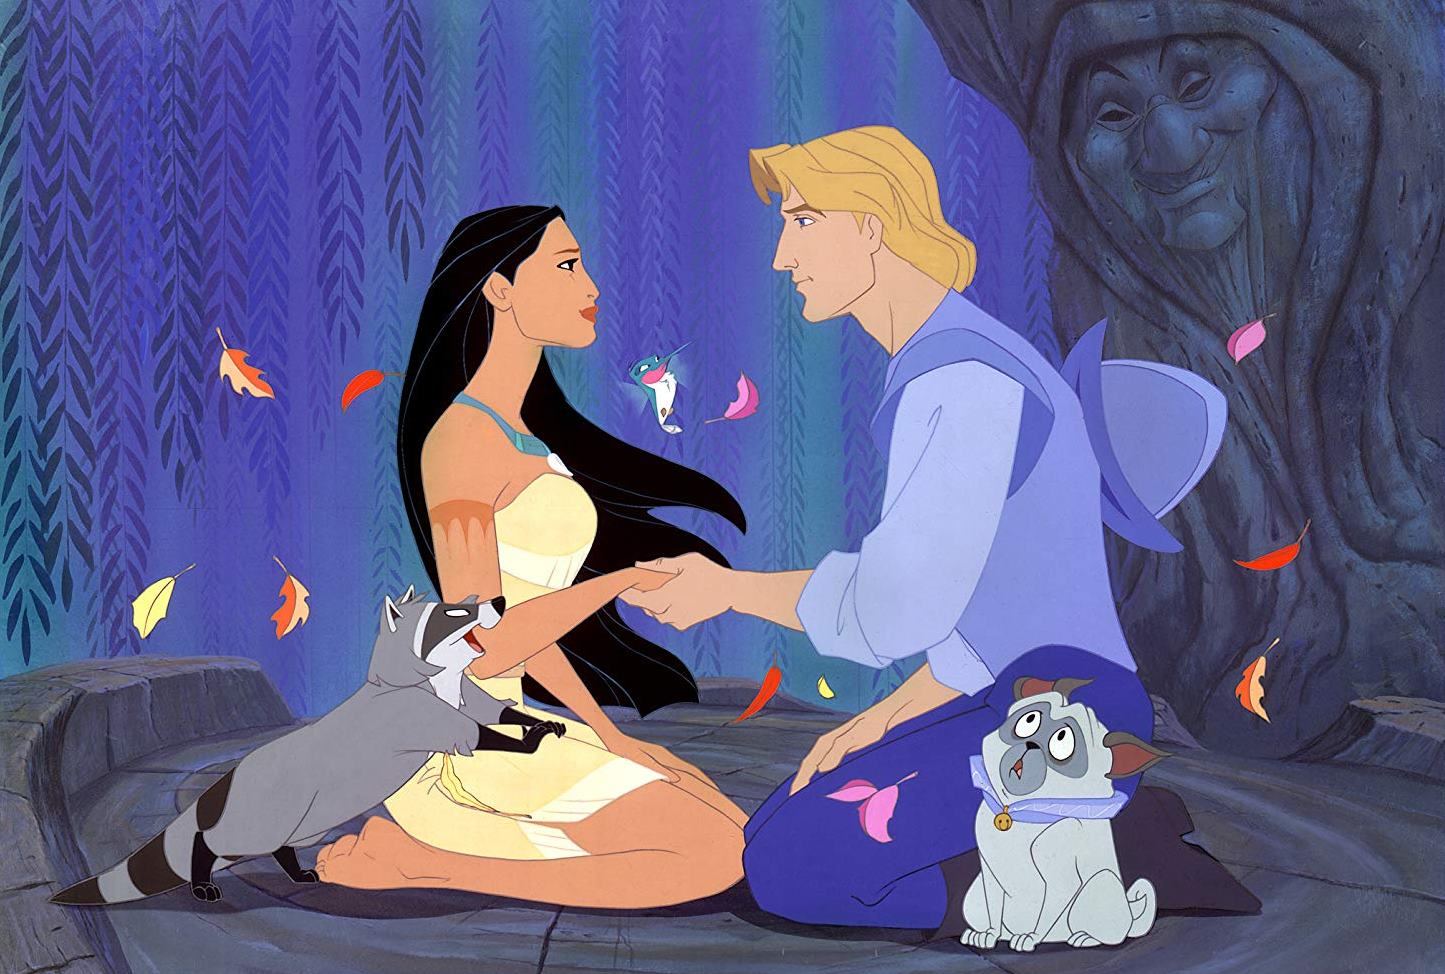 Romance between Pocahontas (voiced by Irene Bedard) and John Smith (voiced by Mel Gibson) in Pocahontas (1995) - a considerable liberalisation of the historical truth